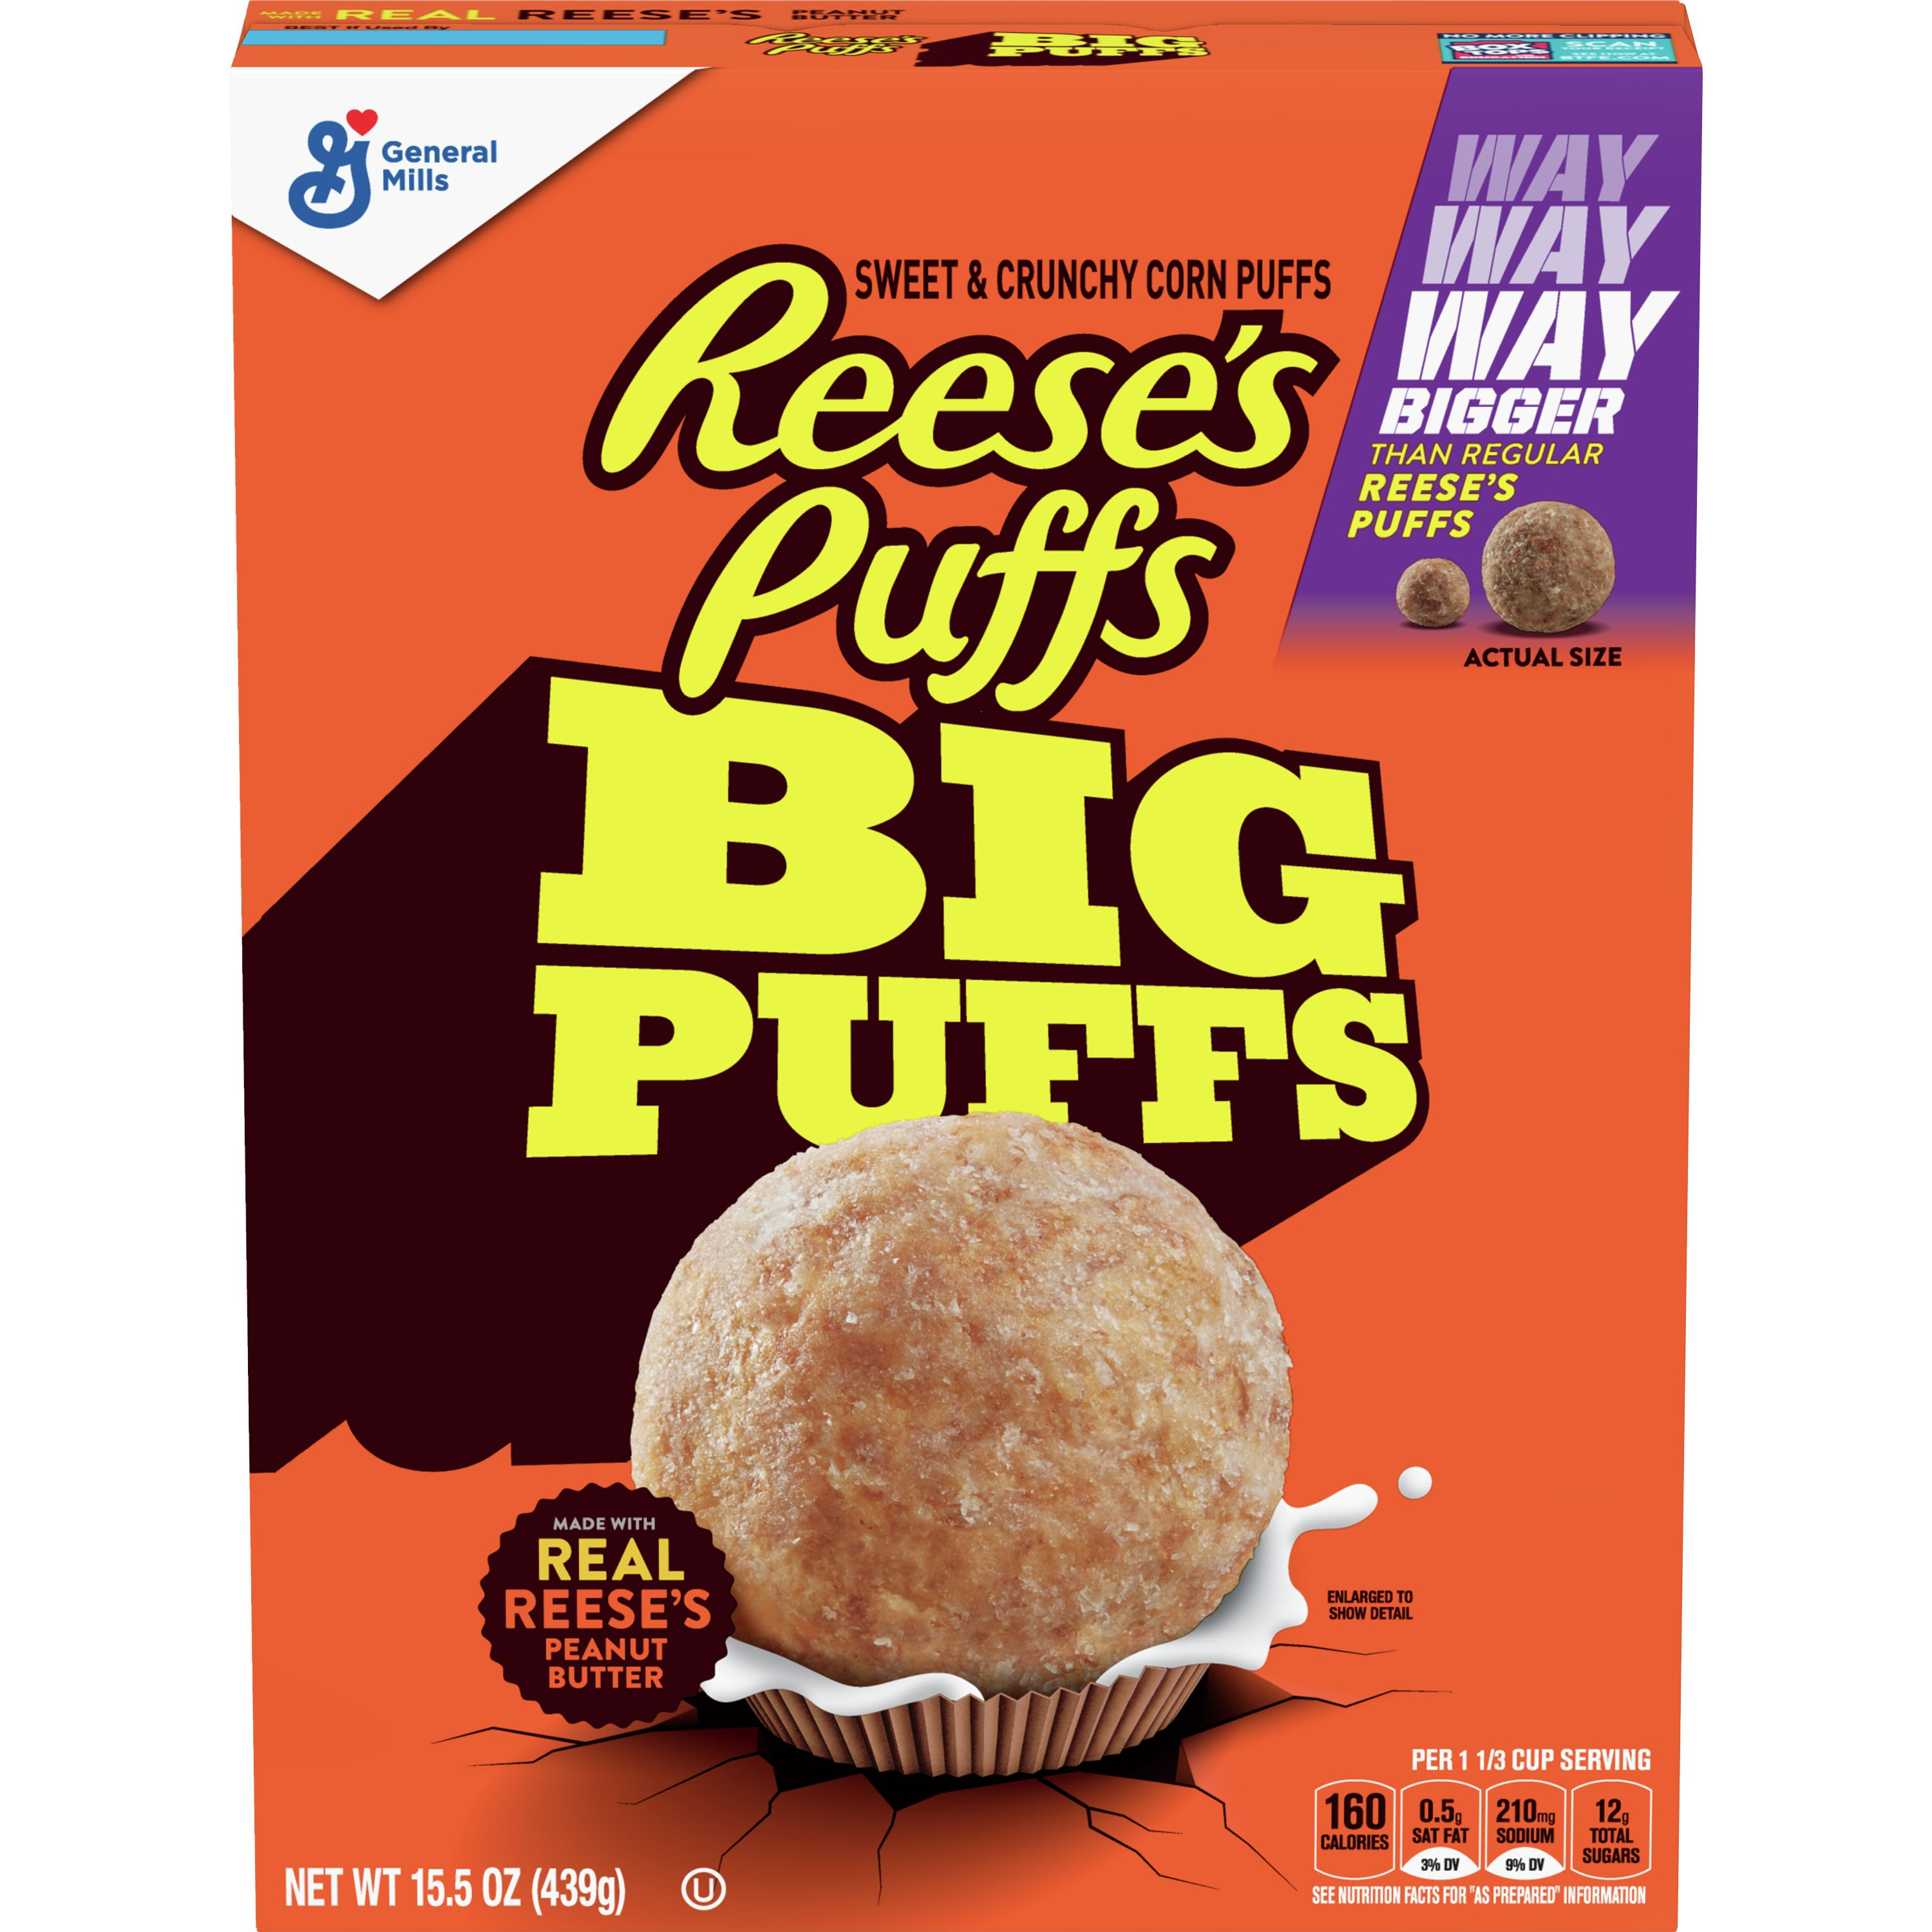 Reeses Puffs Corn Puffs, Sweet & Crunchy, Big Puffs